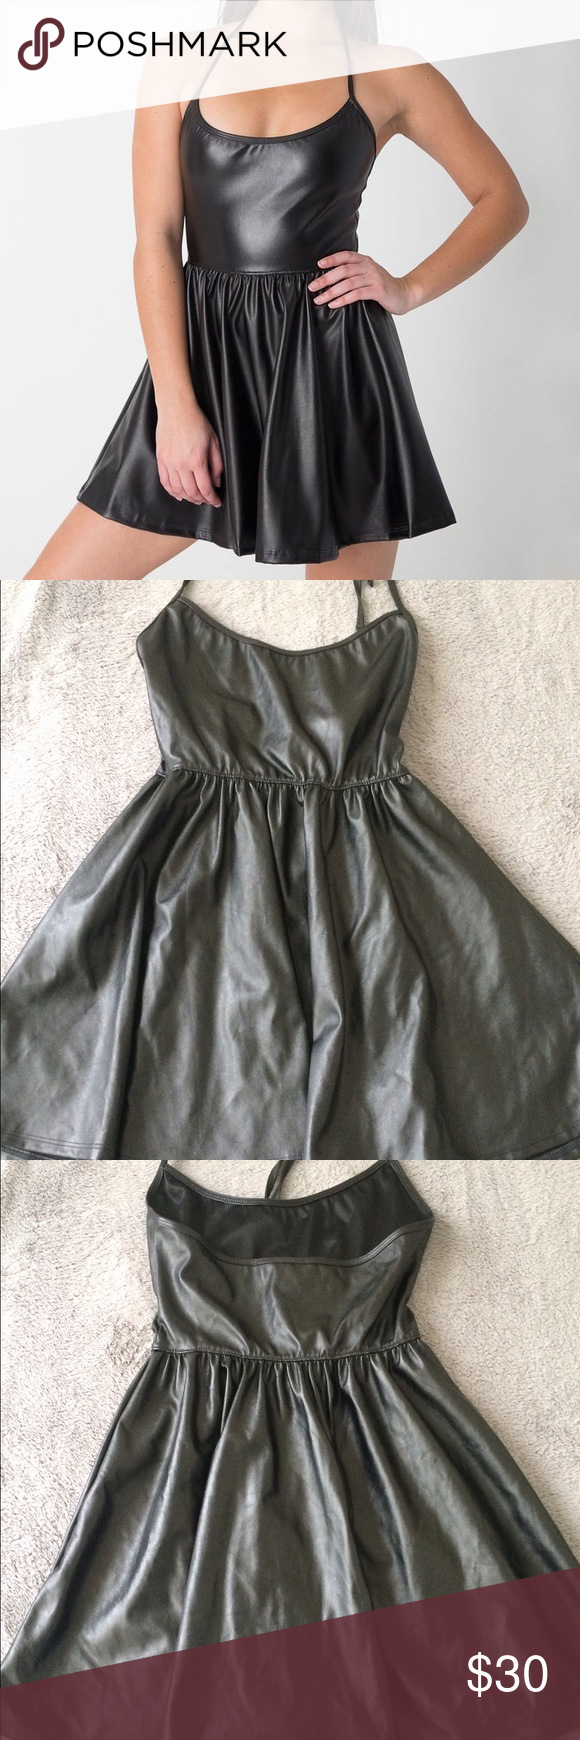 American Apparel Vegan Leather Figure Skater Dress Faux leather skater dress  from American Apparel. Halter style. NWT. Never worn. True to size. 13b6f6346